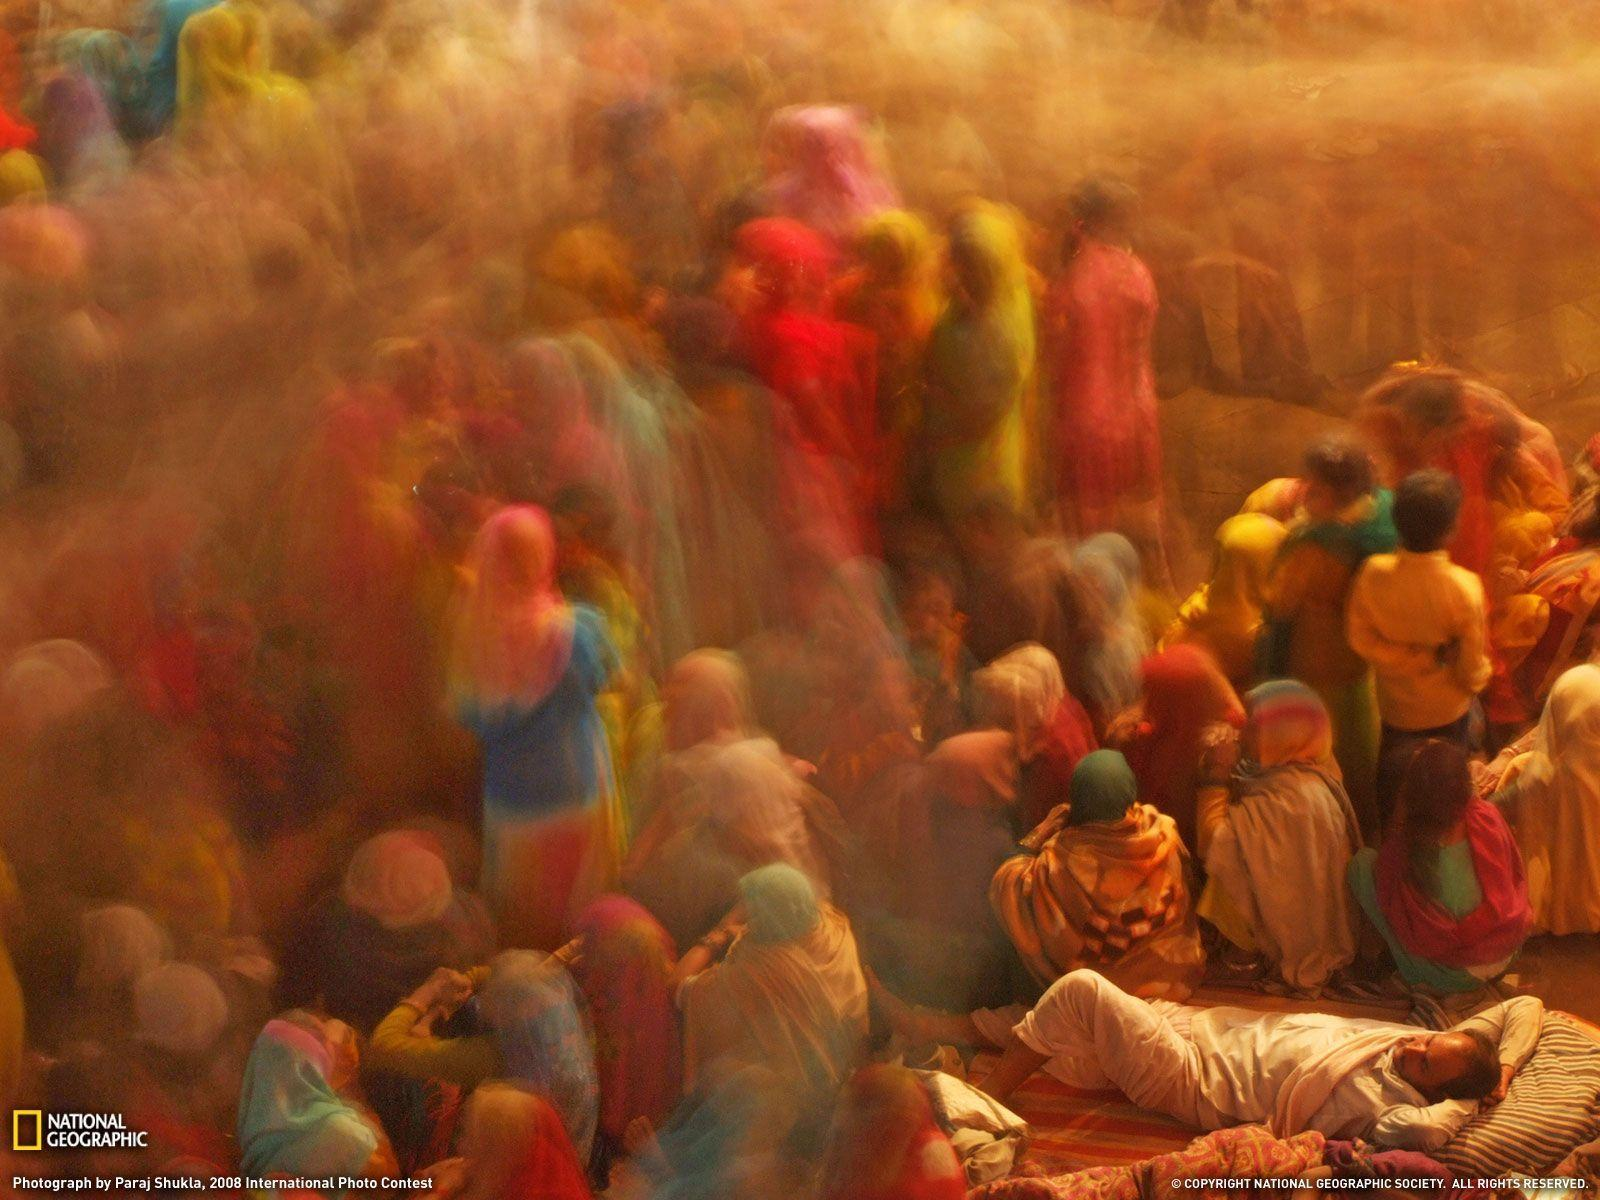 Commotion Picture, India Wallpaper - National Geographic Photo of ...